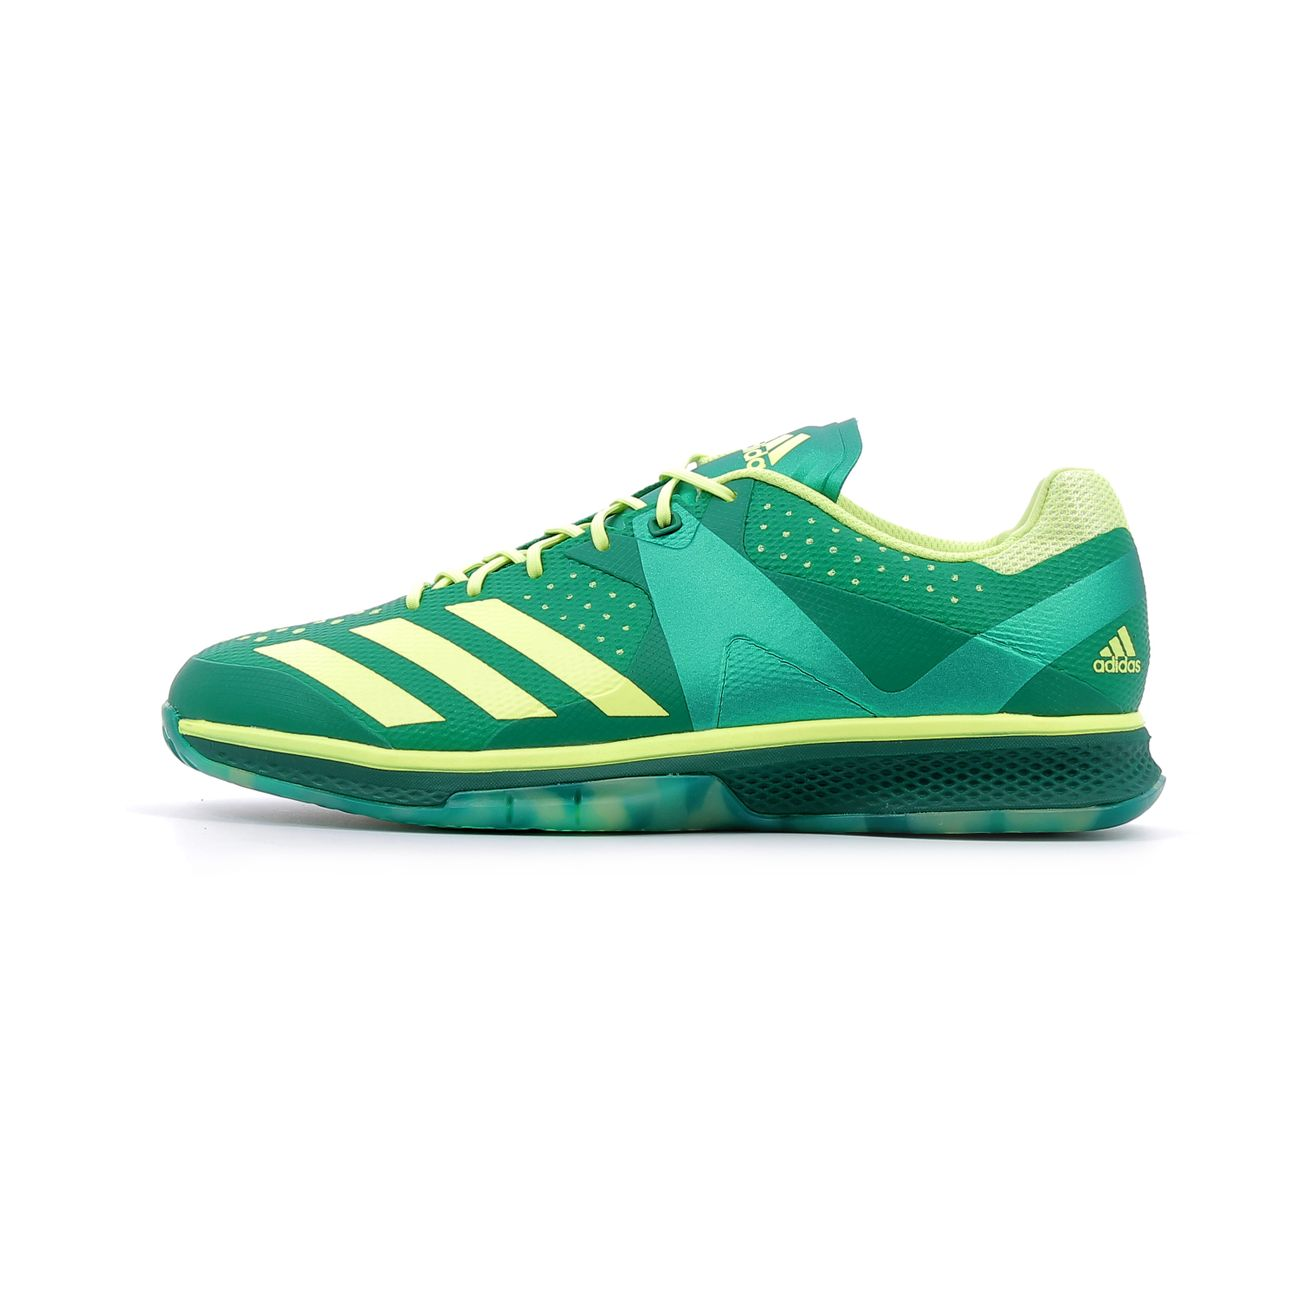 De Counterblast Handball Performance Adidas Chaussure TF1clJK